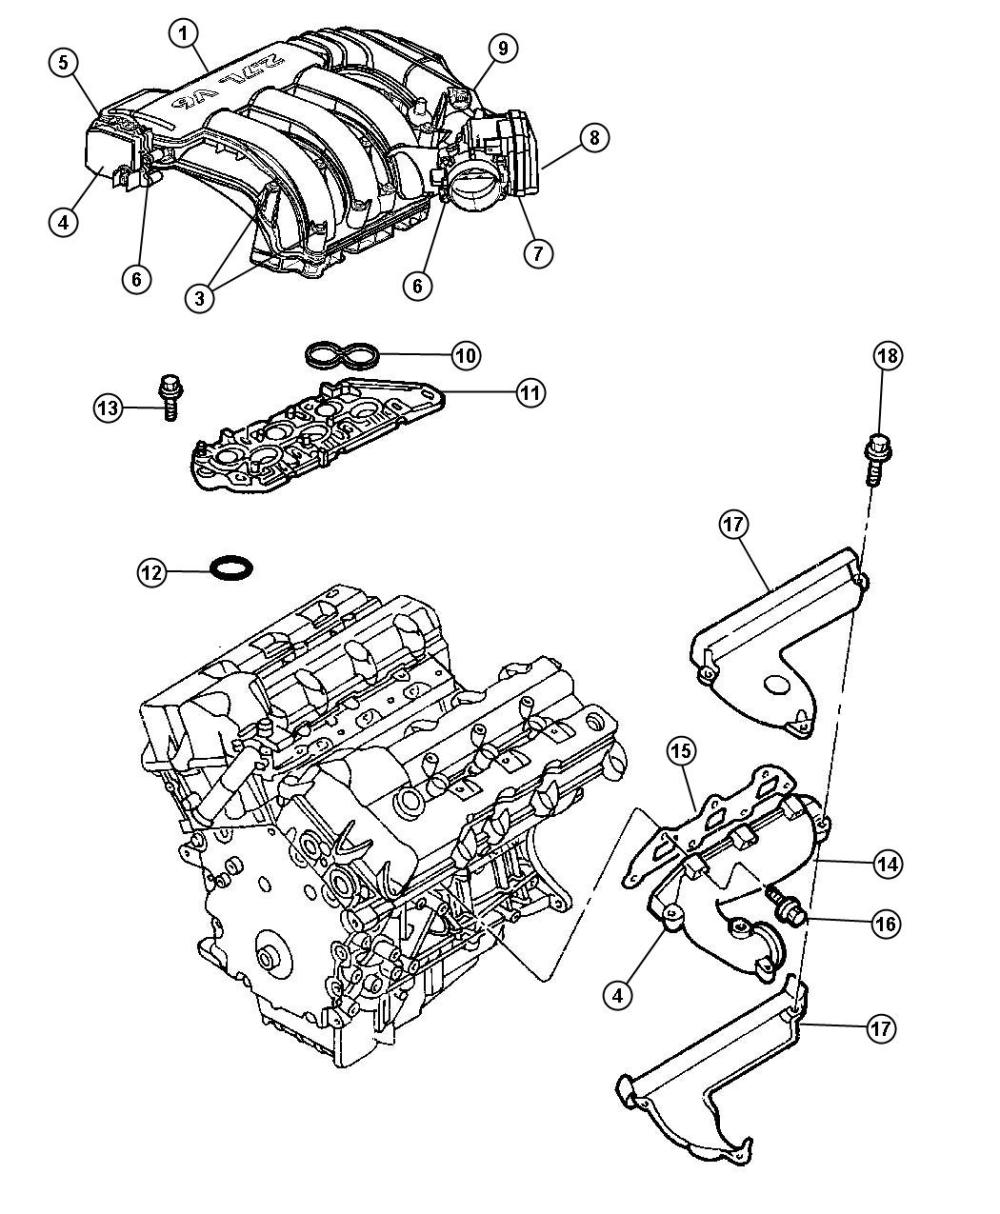 medium resolution of chrysler 2 7 engine diagram wiring diagram detailed 1999 dodge intrepid engine diagram chrysler 2 7 engine diagram